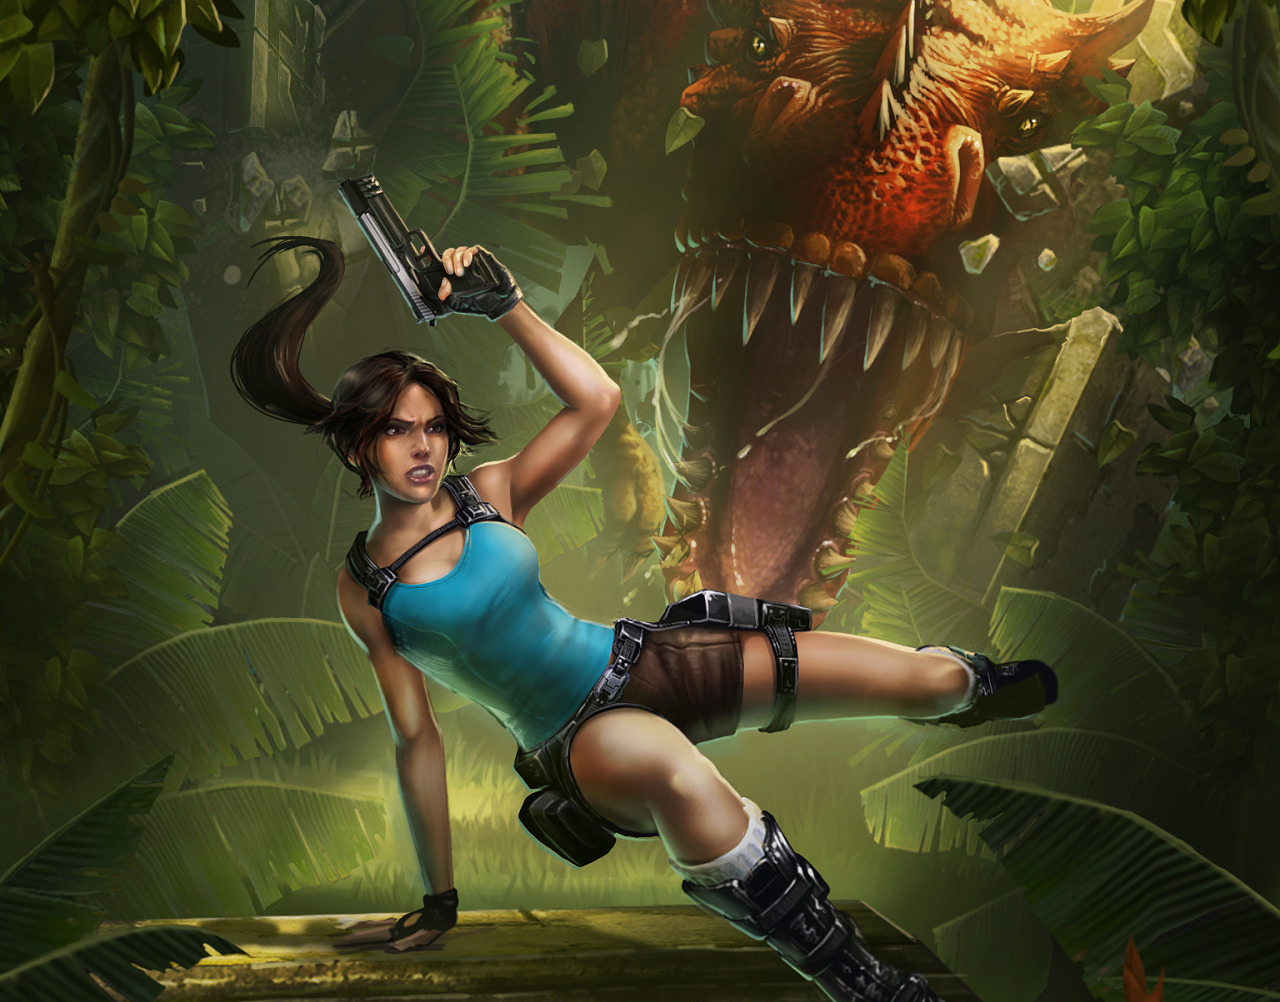 lara_croft_relic_run-2751413.jpg